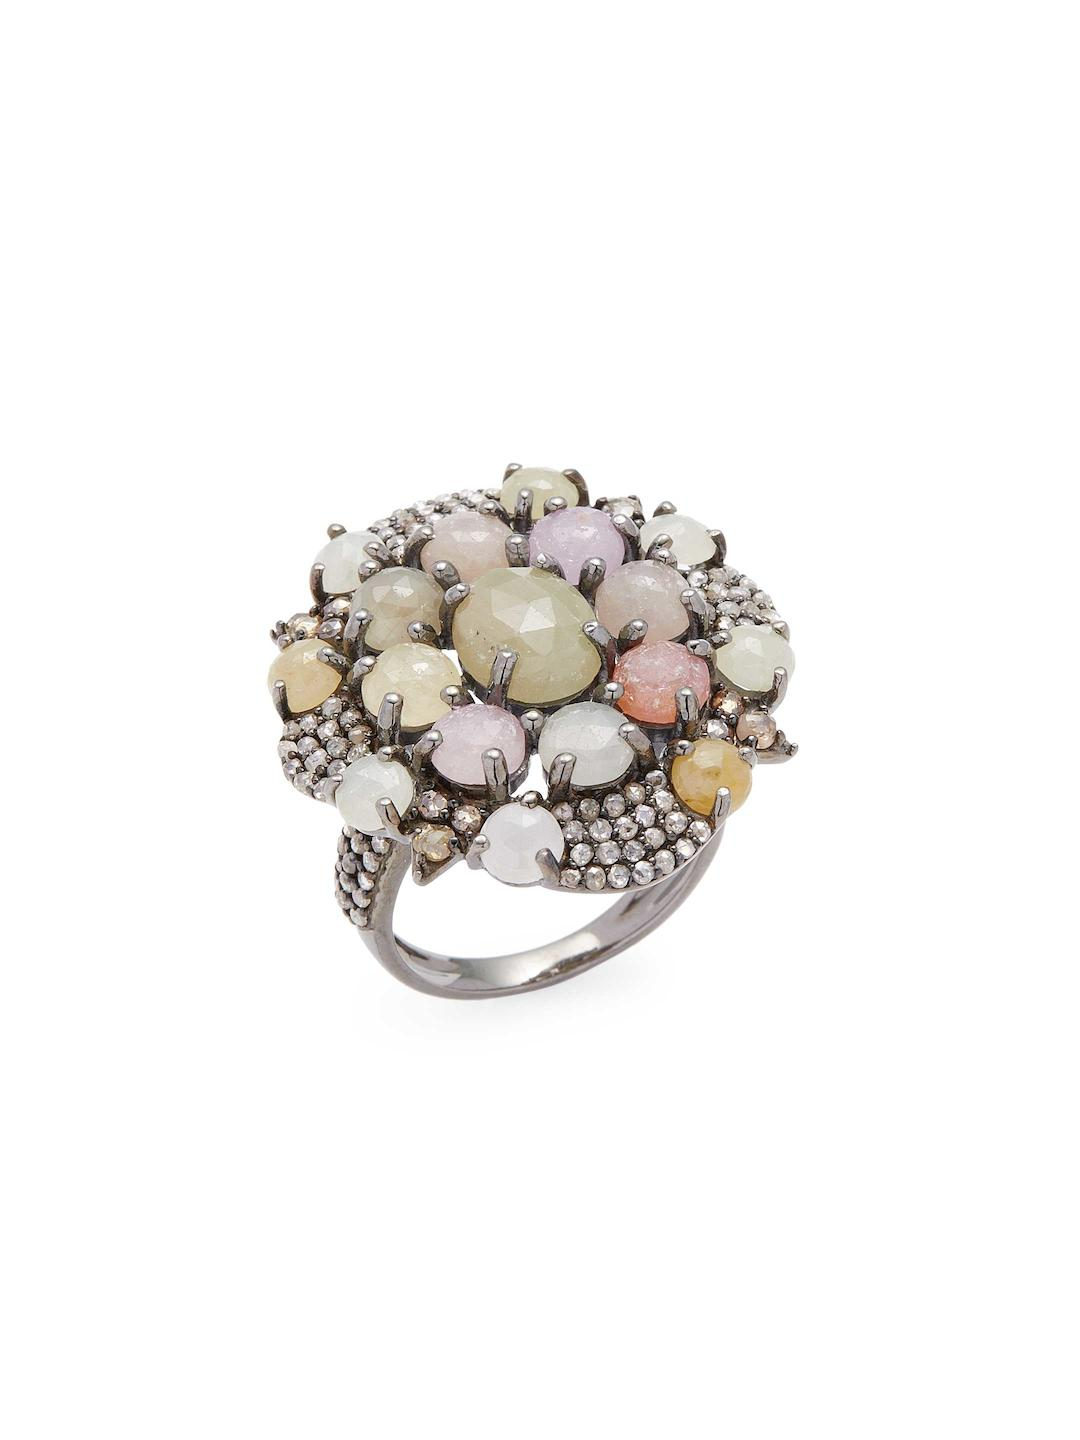 blue link oscar by and alternating diamond with multicolored heyman designed shaped bracelet sapphire oval sapphires pin pav separated yellow estate